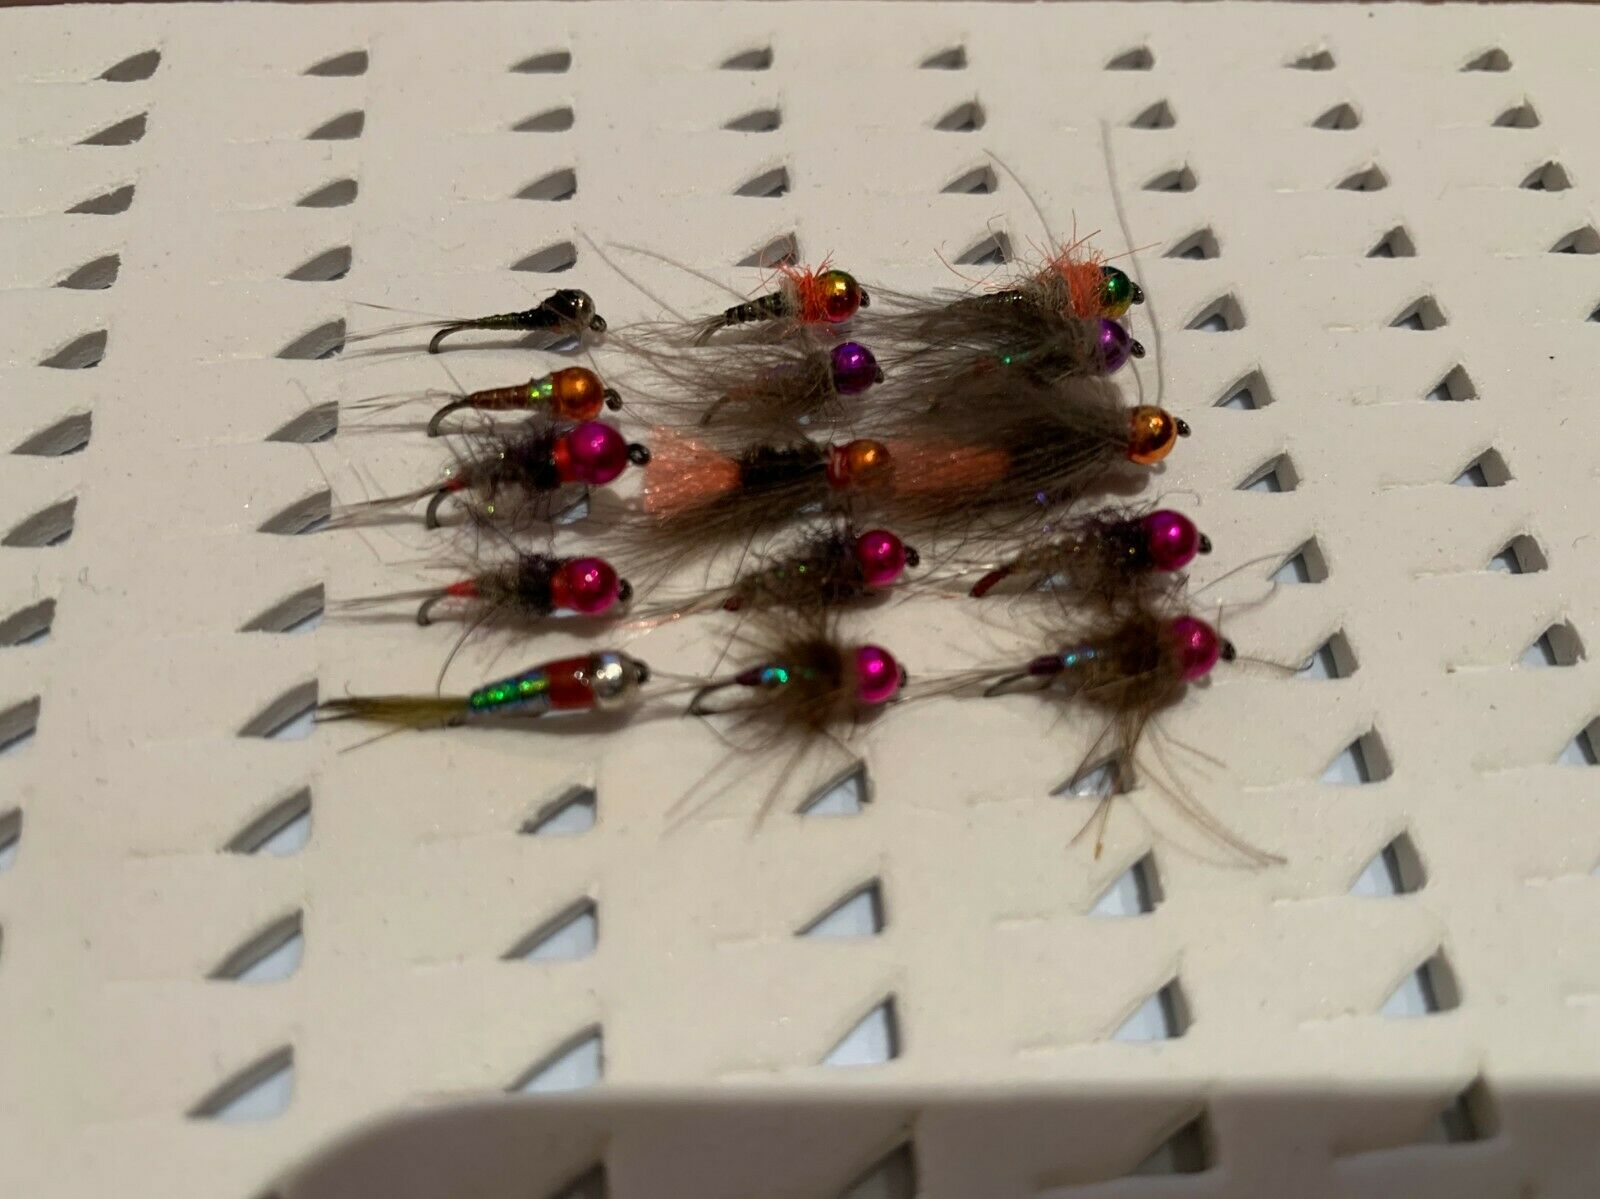 30 ninfas surtidas, anzuelo sin muerte. Pesca a mosca. FLY FISHING (19)